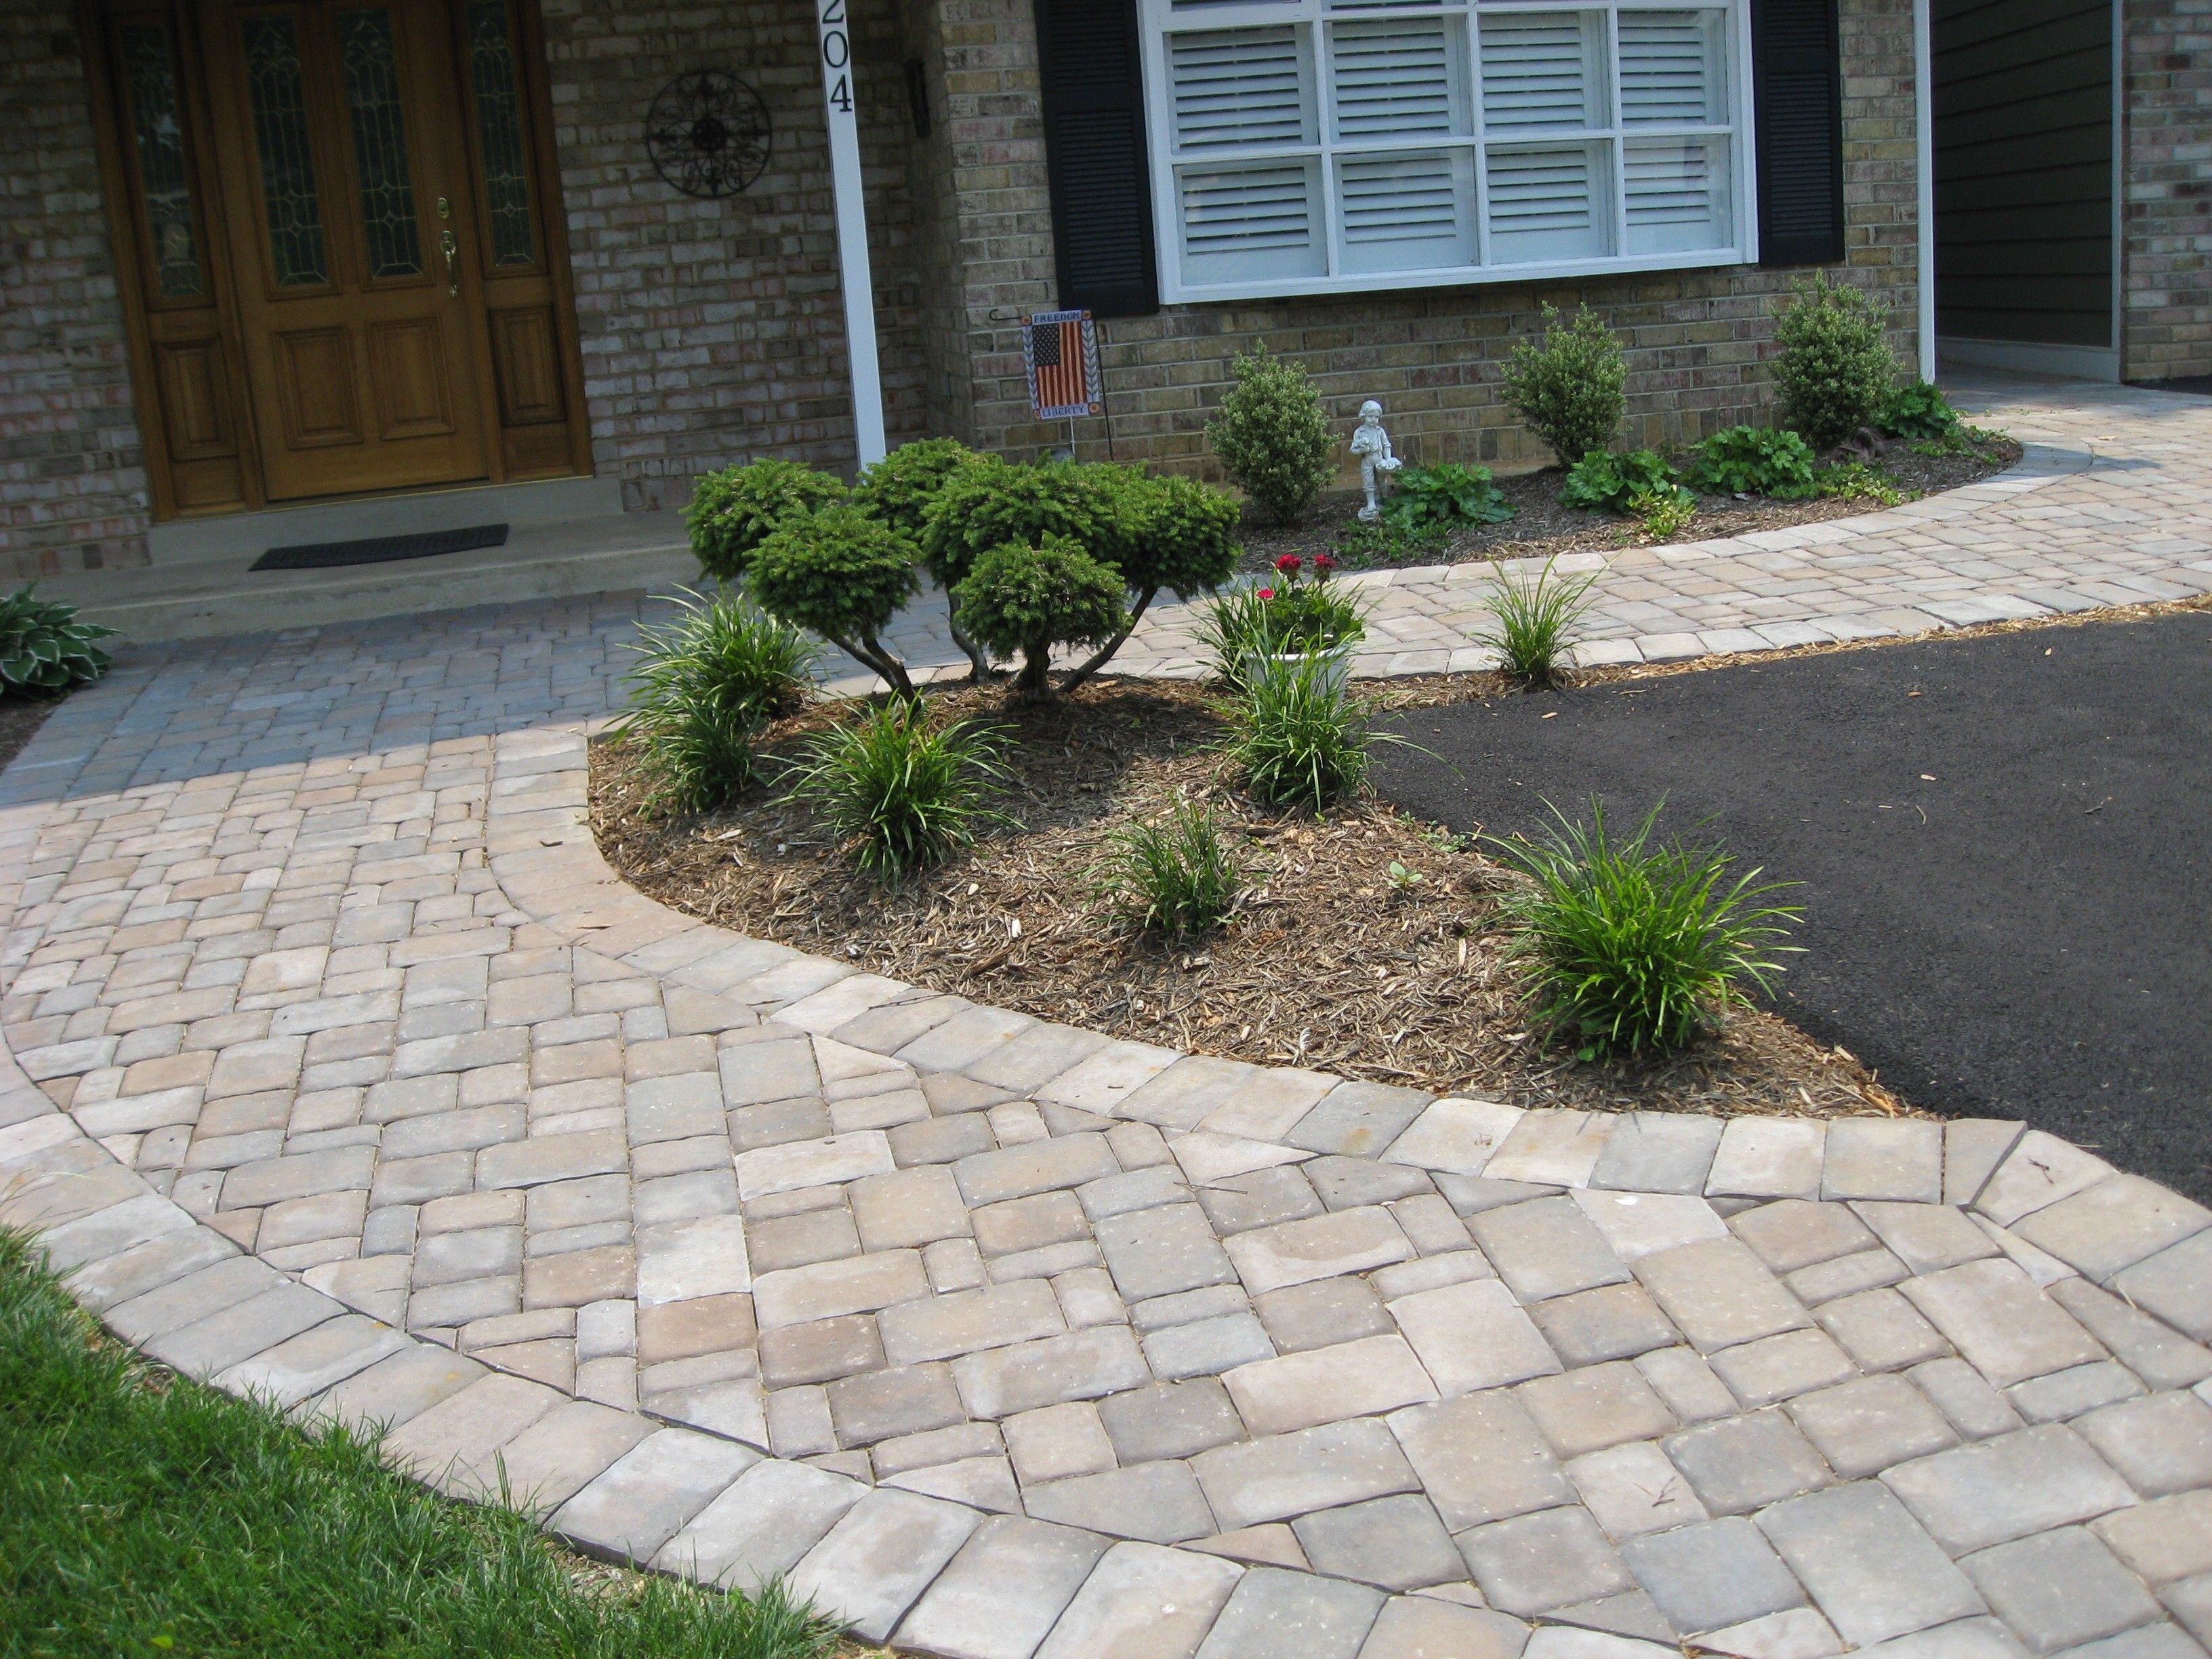 paver walkway design garden advice for your home decoration - Paver Walkway Design Ideas